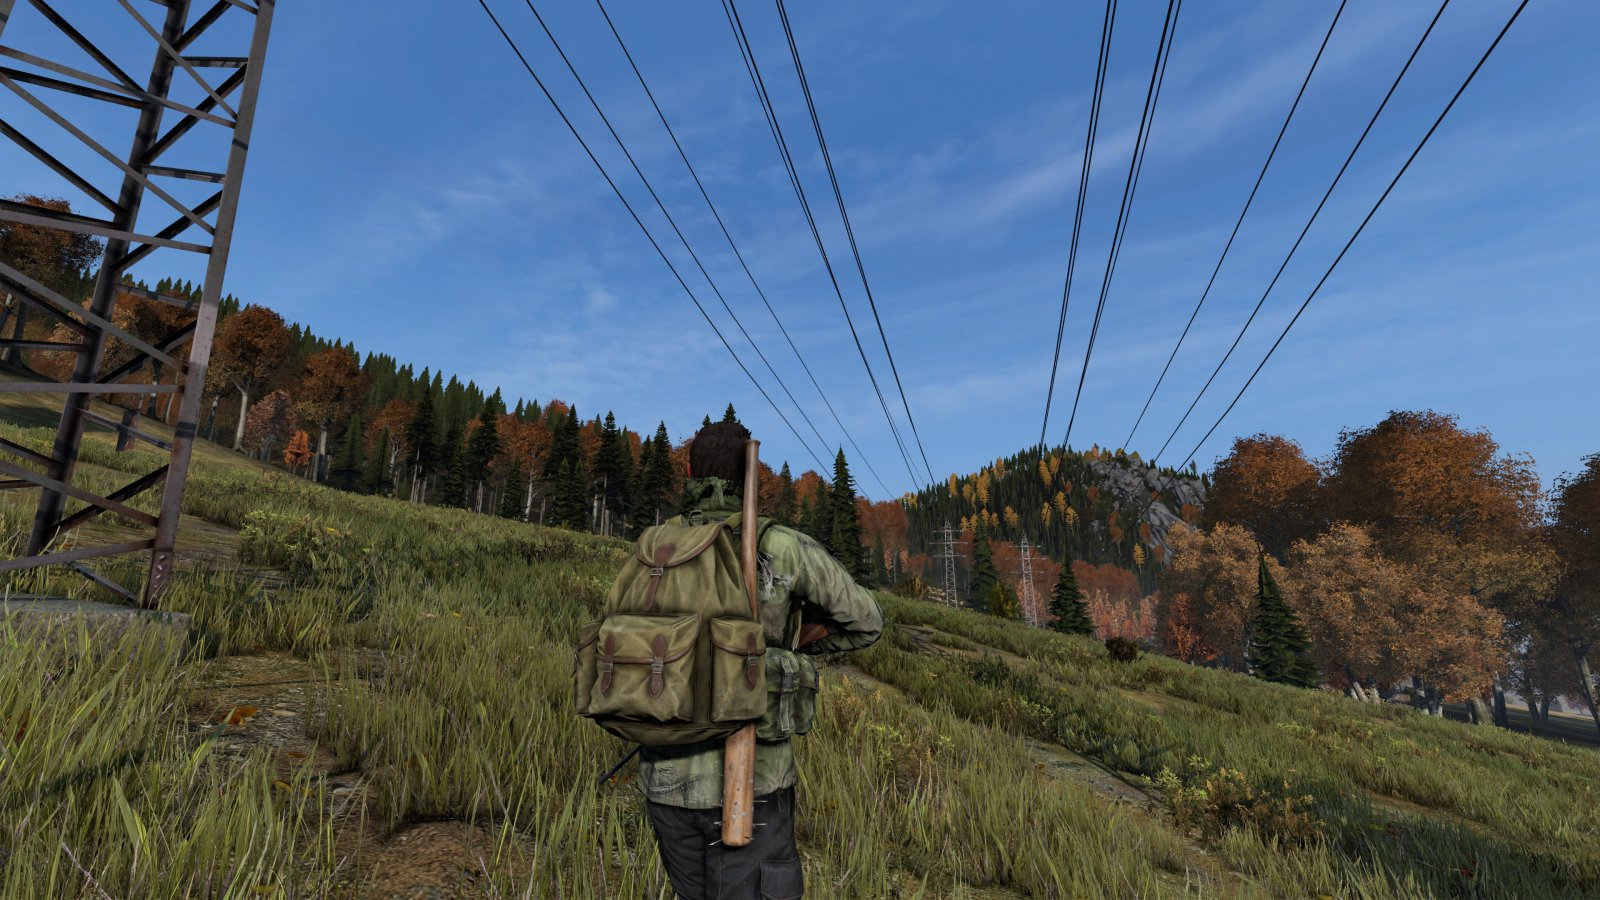 Along the powerlines